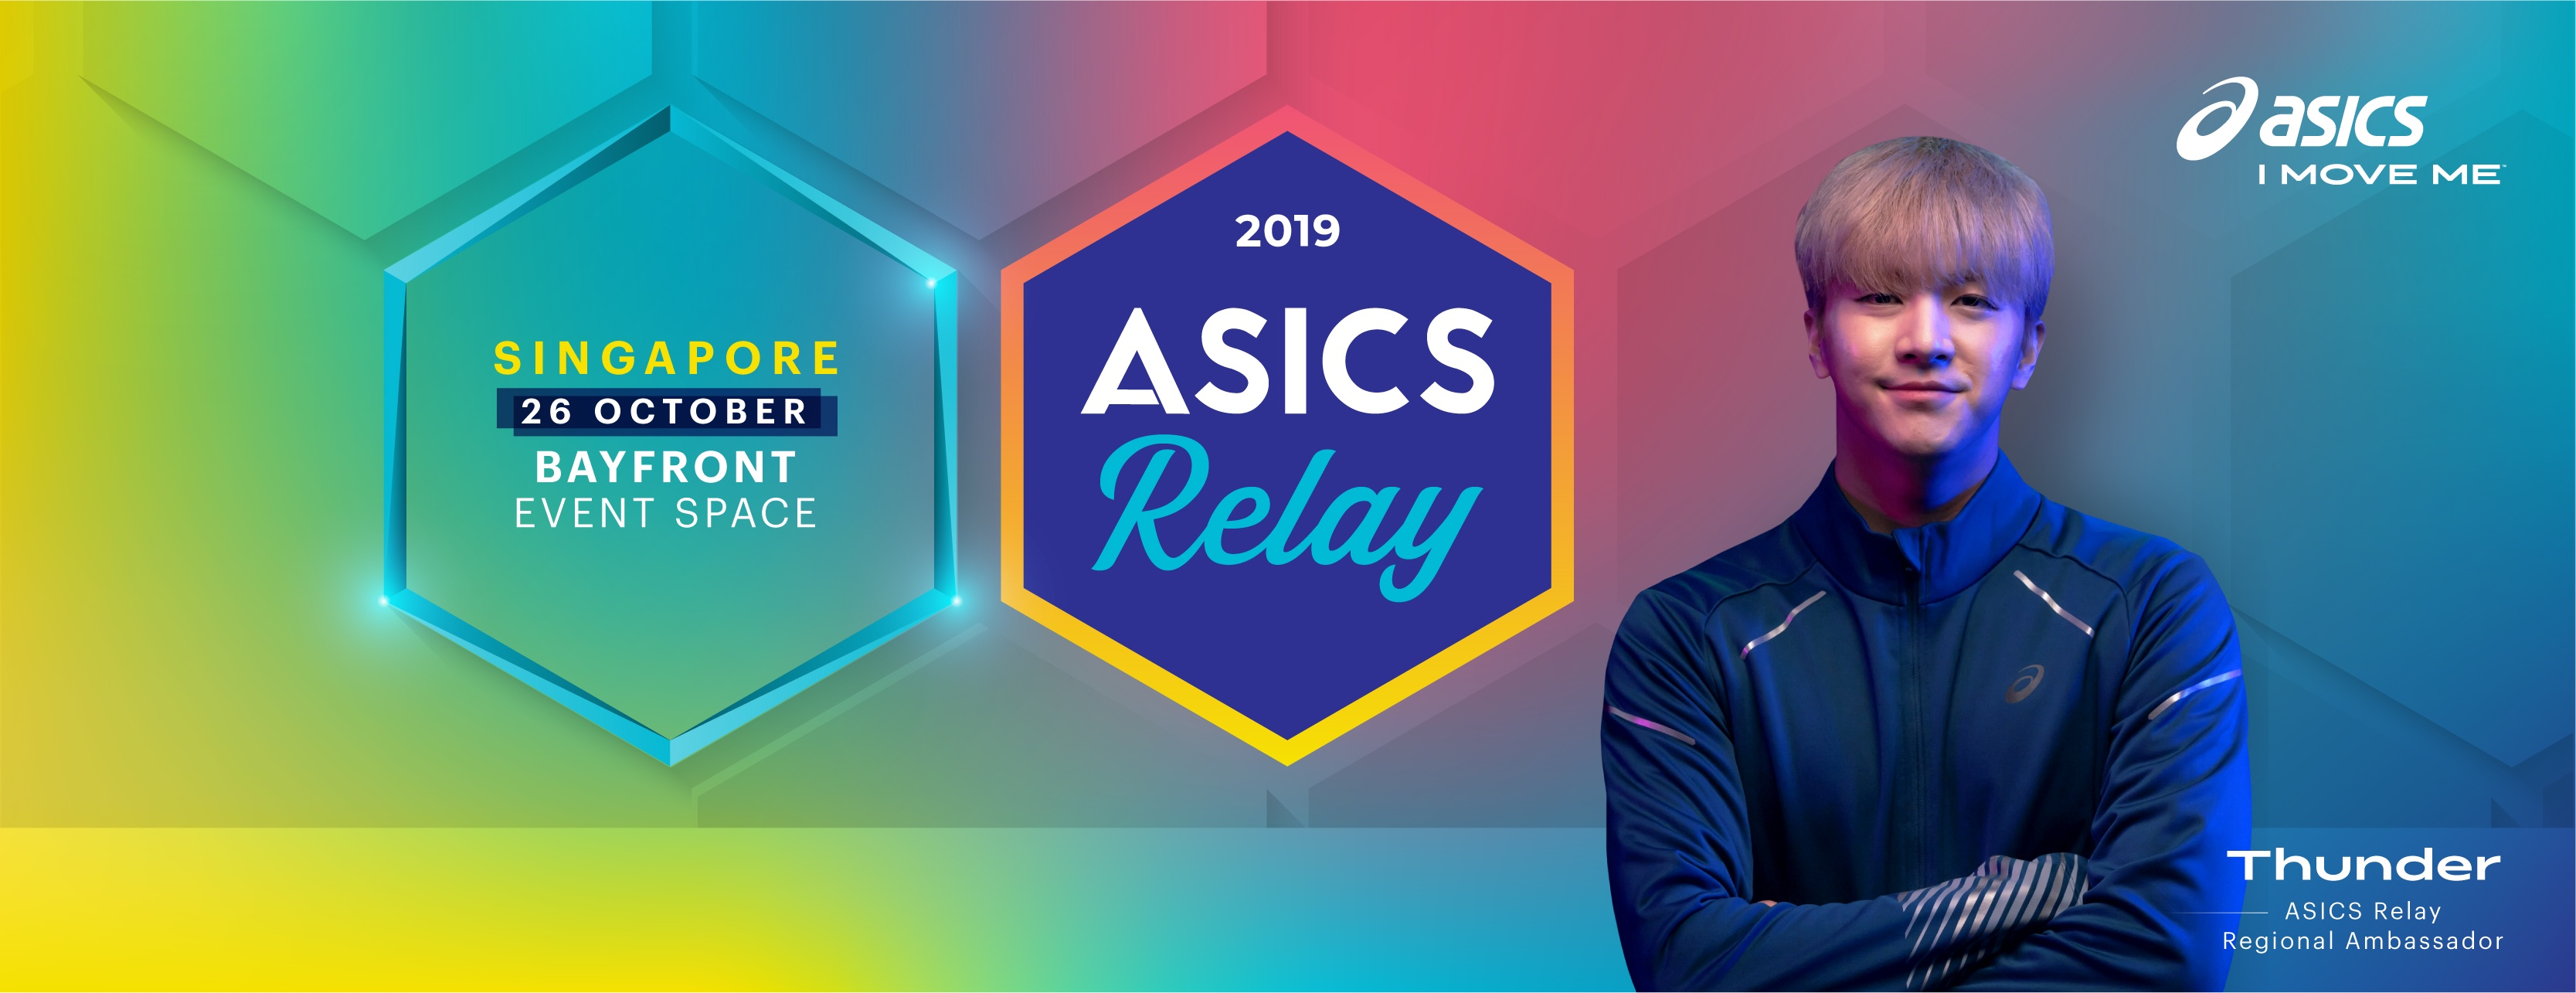 ASICS Relay_Web Banner_SINGAPORE P